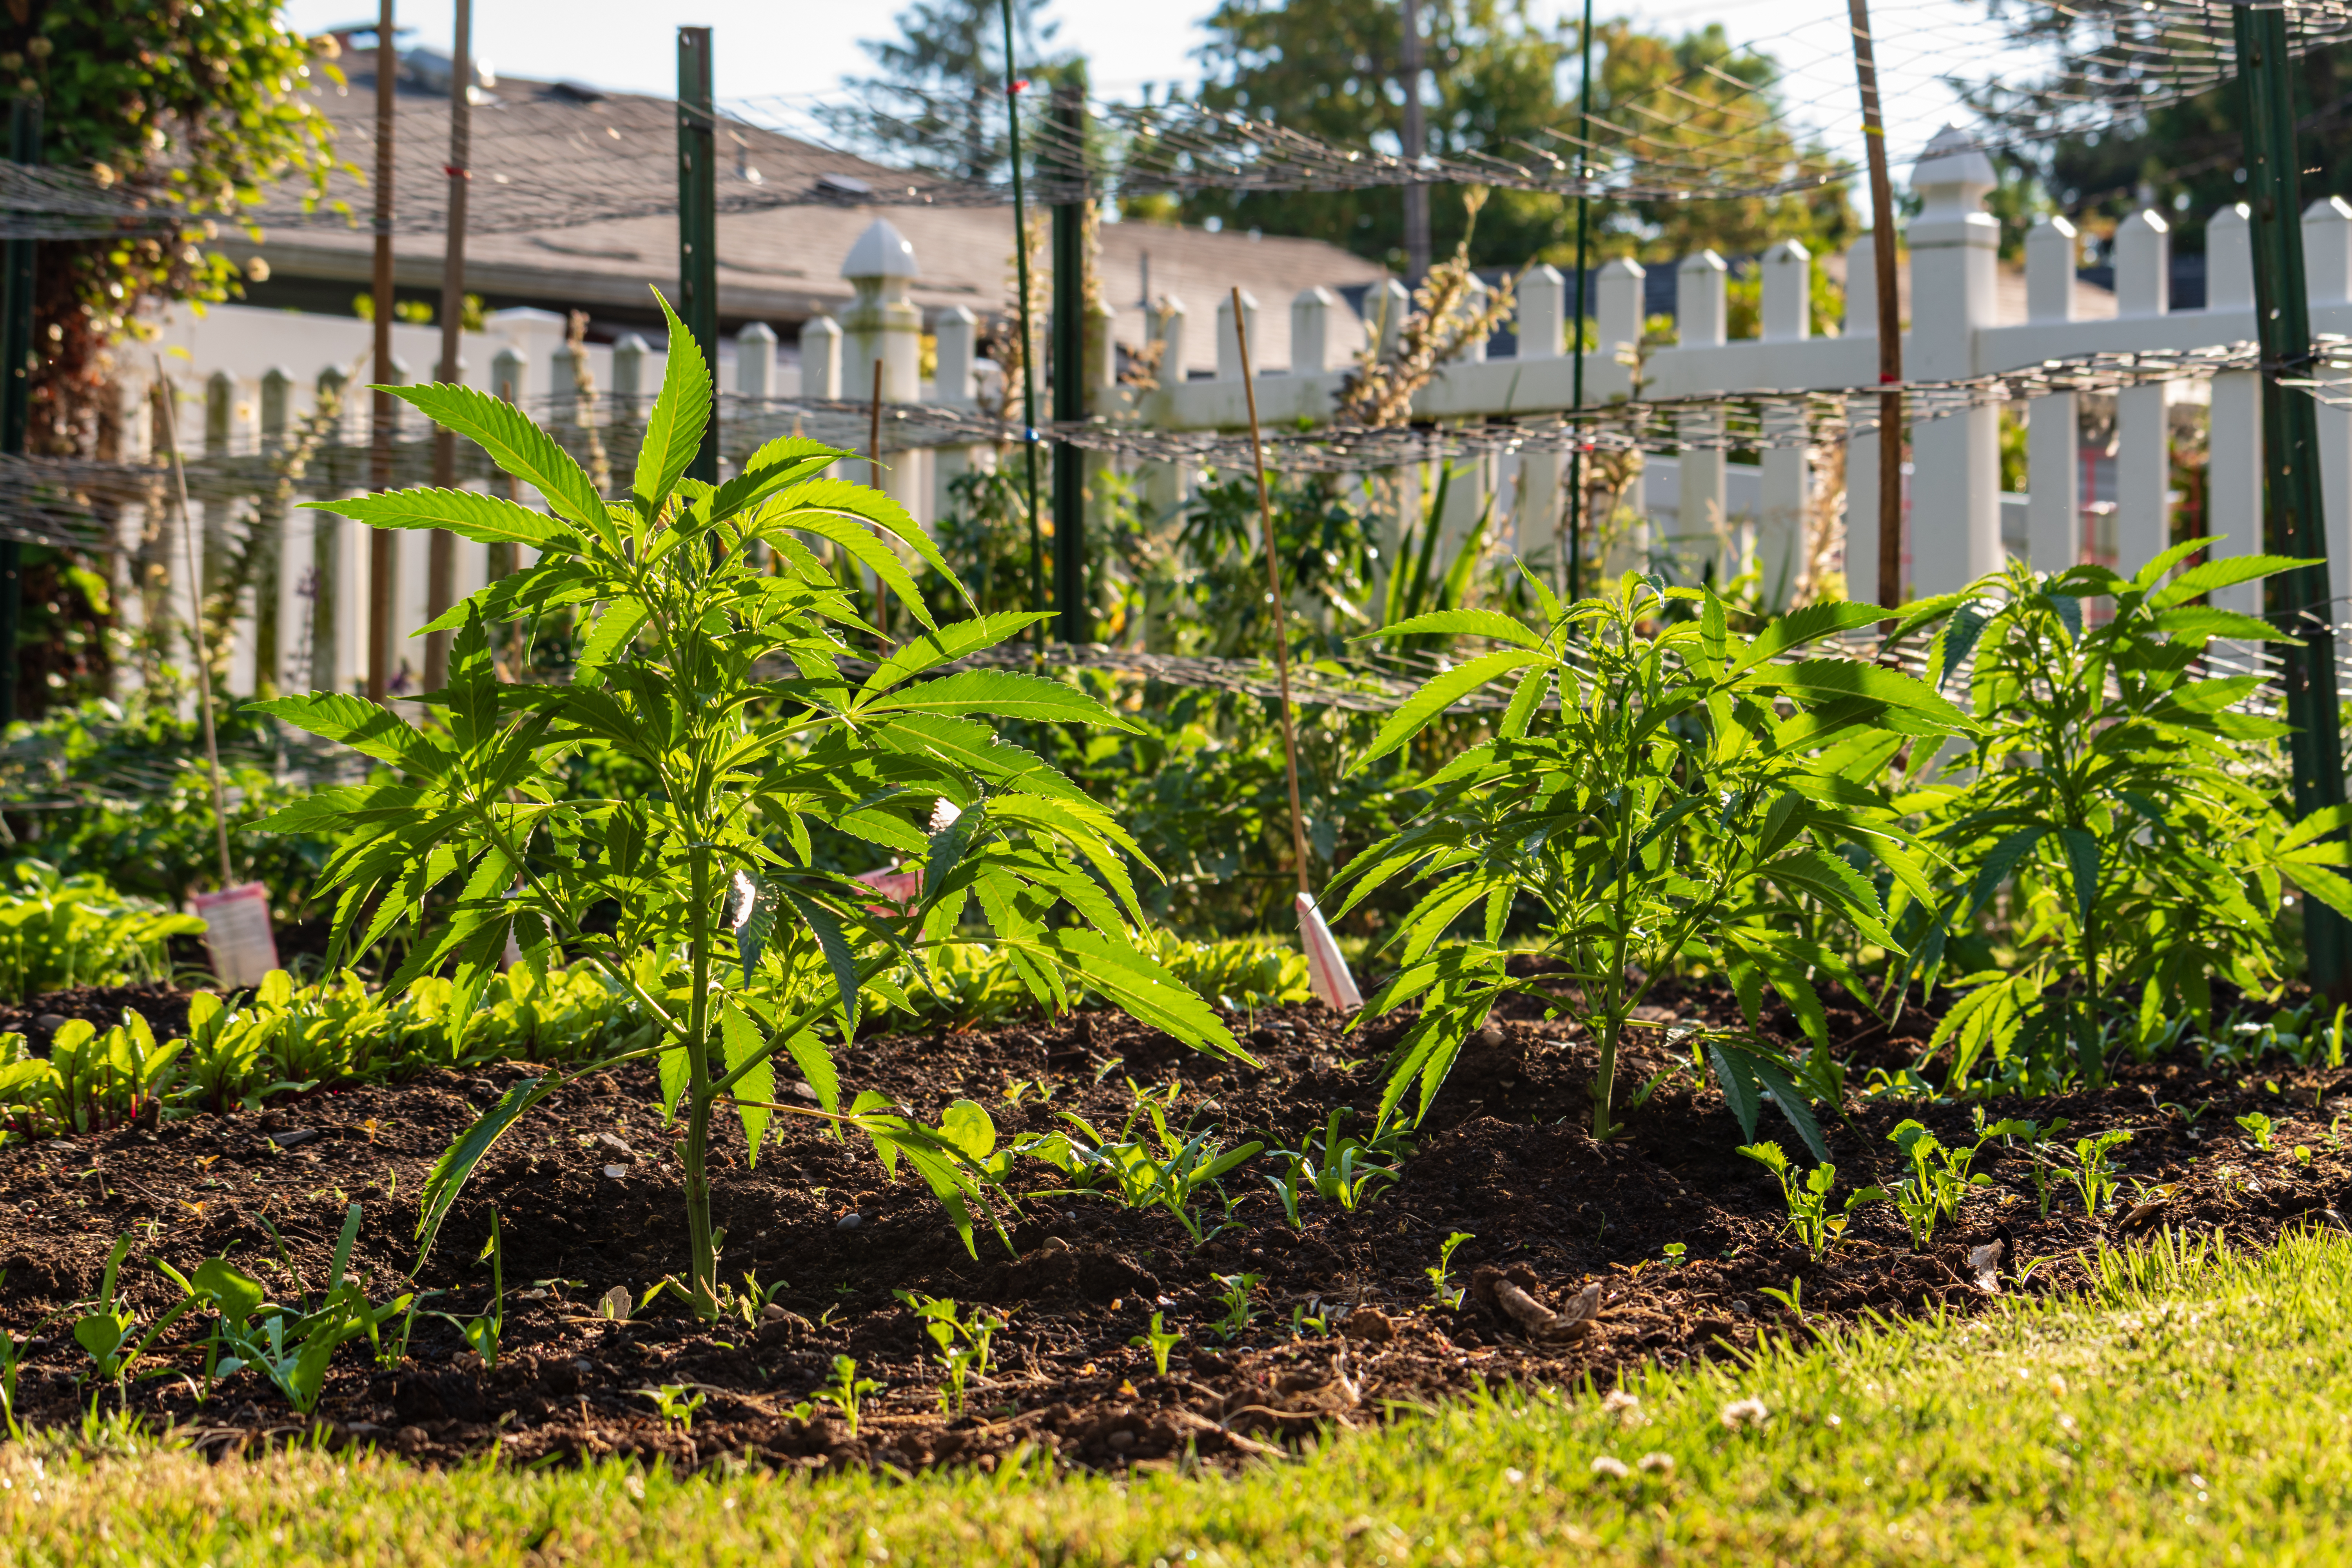 How To Grow Cannabis: A Beginner's Guide To Safely ...